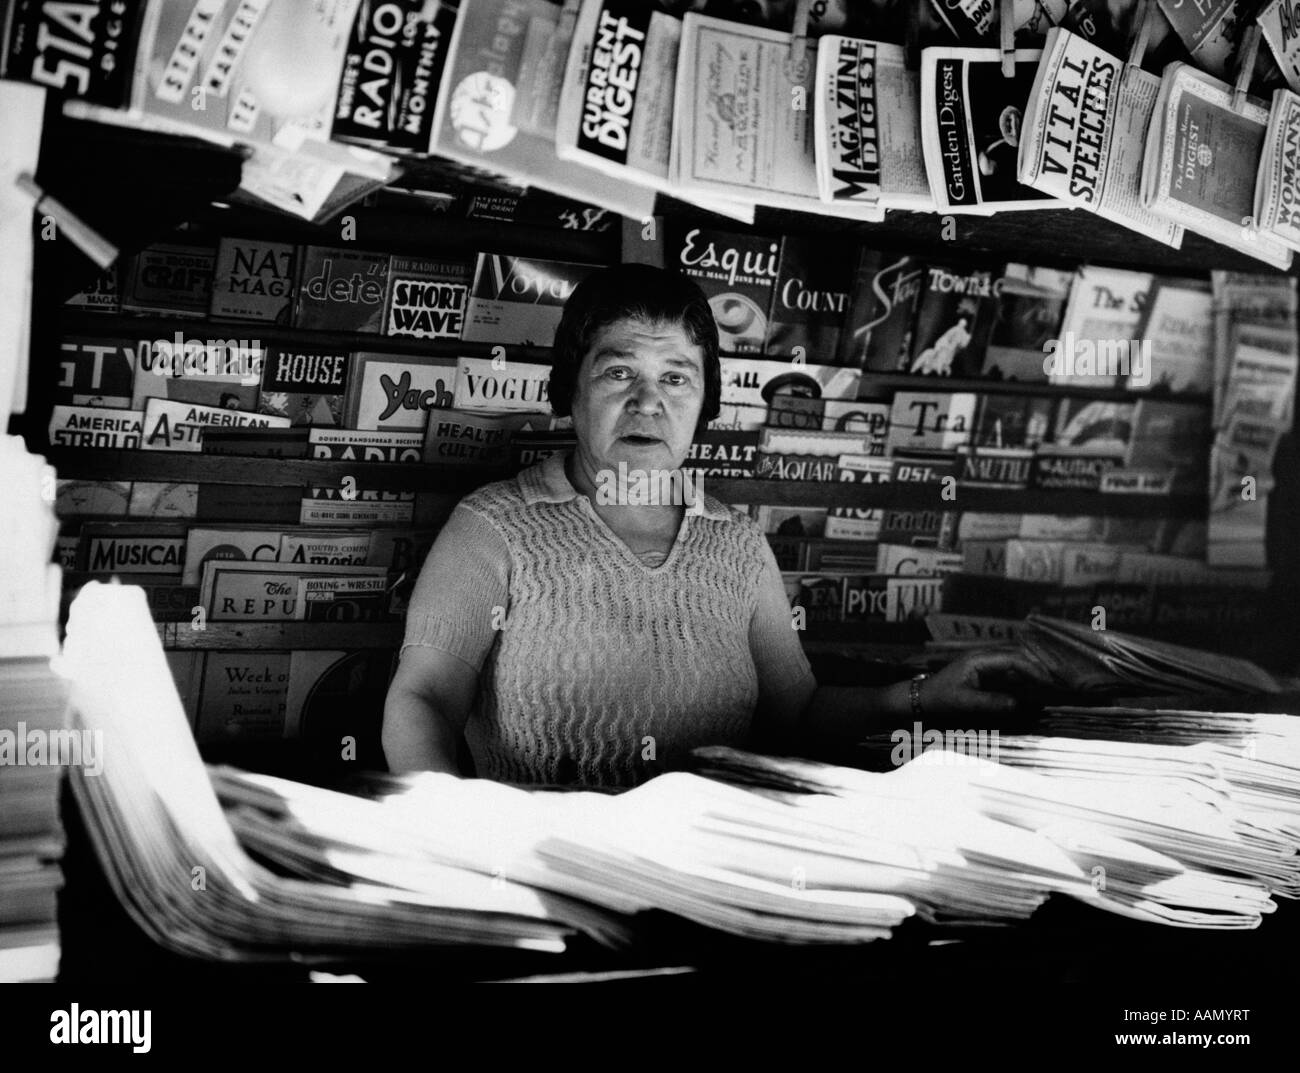 1930s WOMAN SELLING MAGAZINES NYC SIDEWALK NEWSSTAND NEWS STAND NEWSPAPERS 42ND STREET MADISON AVENUE NEW YORK CITY - Stock Image